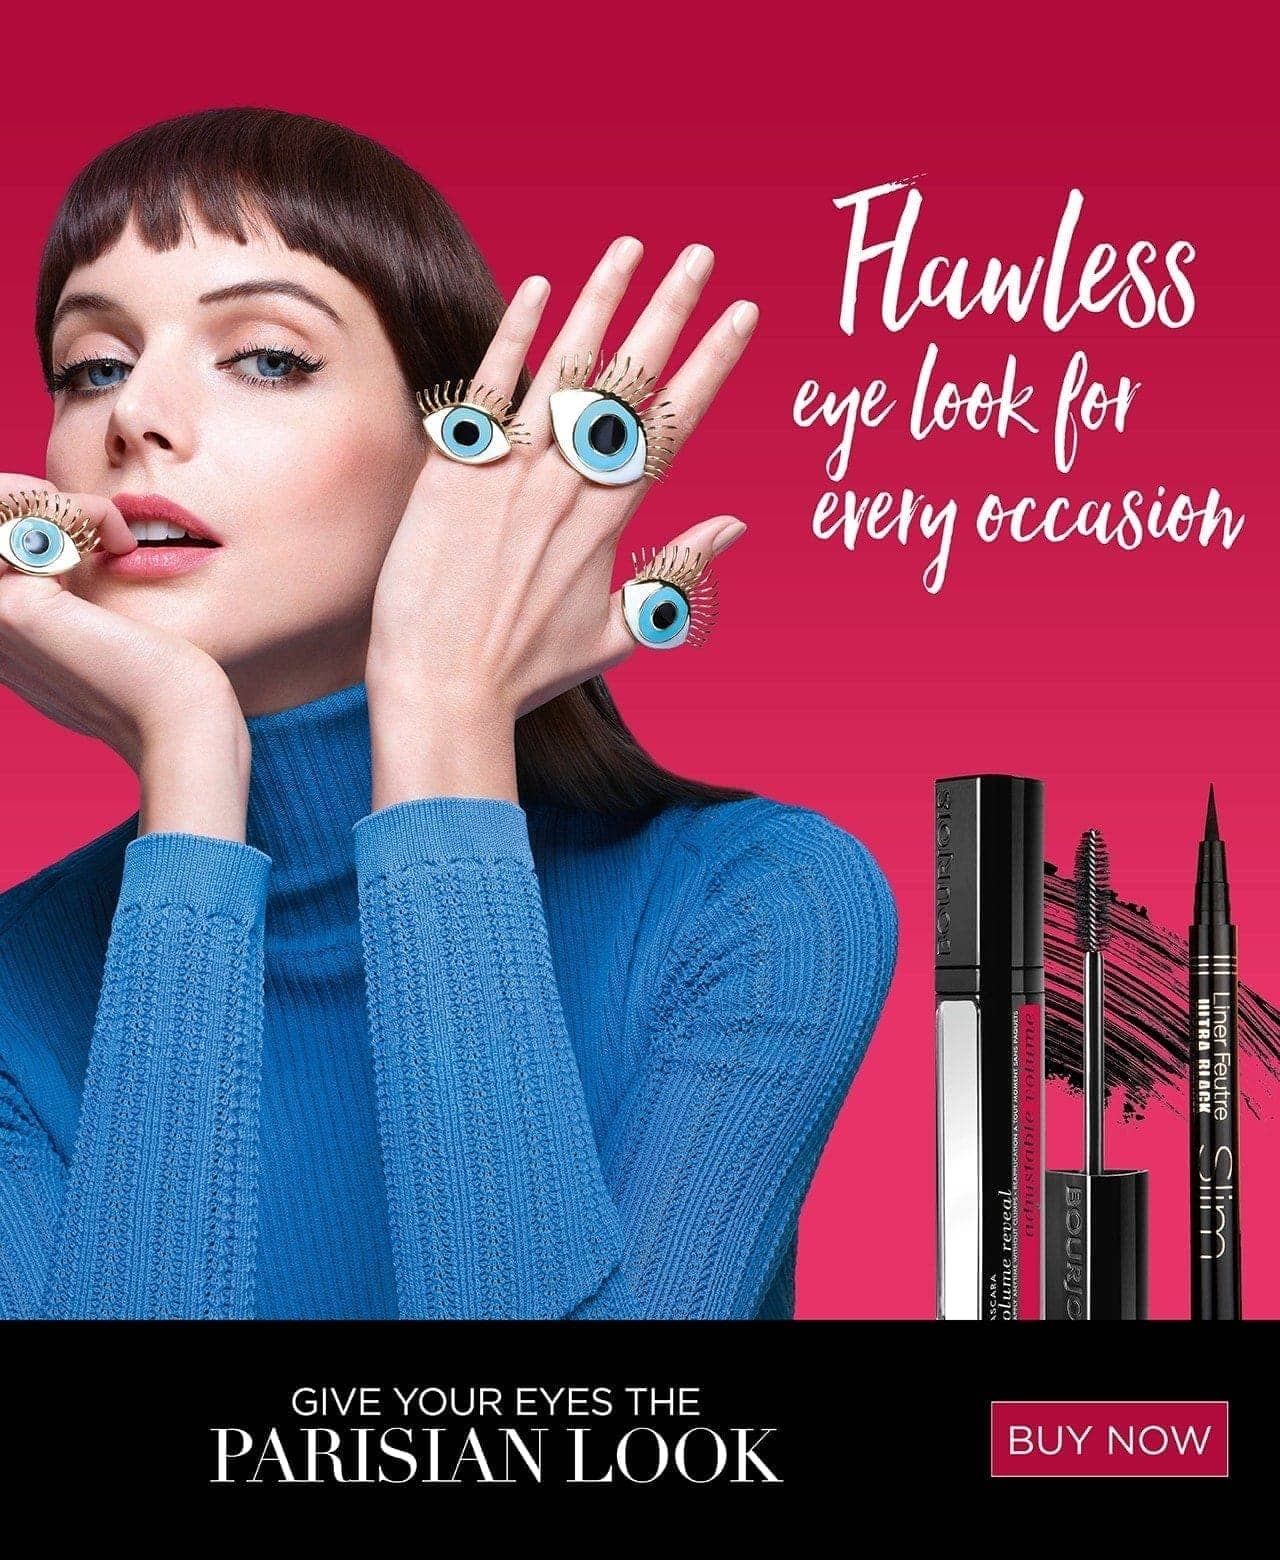 Bourjois Flawless eye look for every occassion